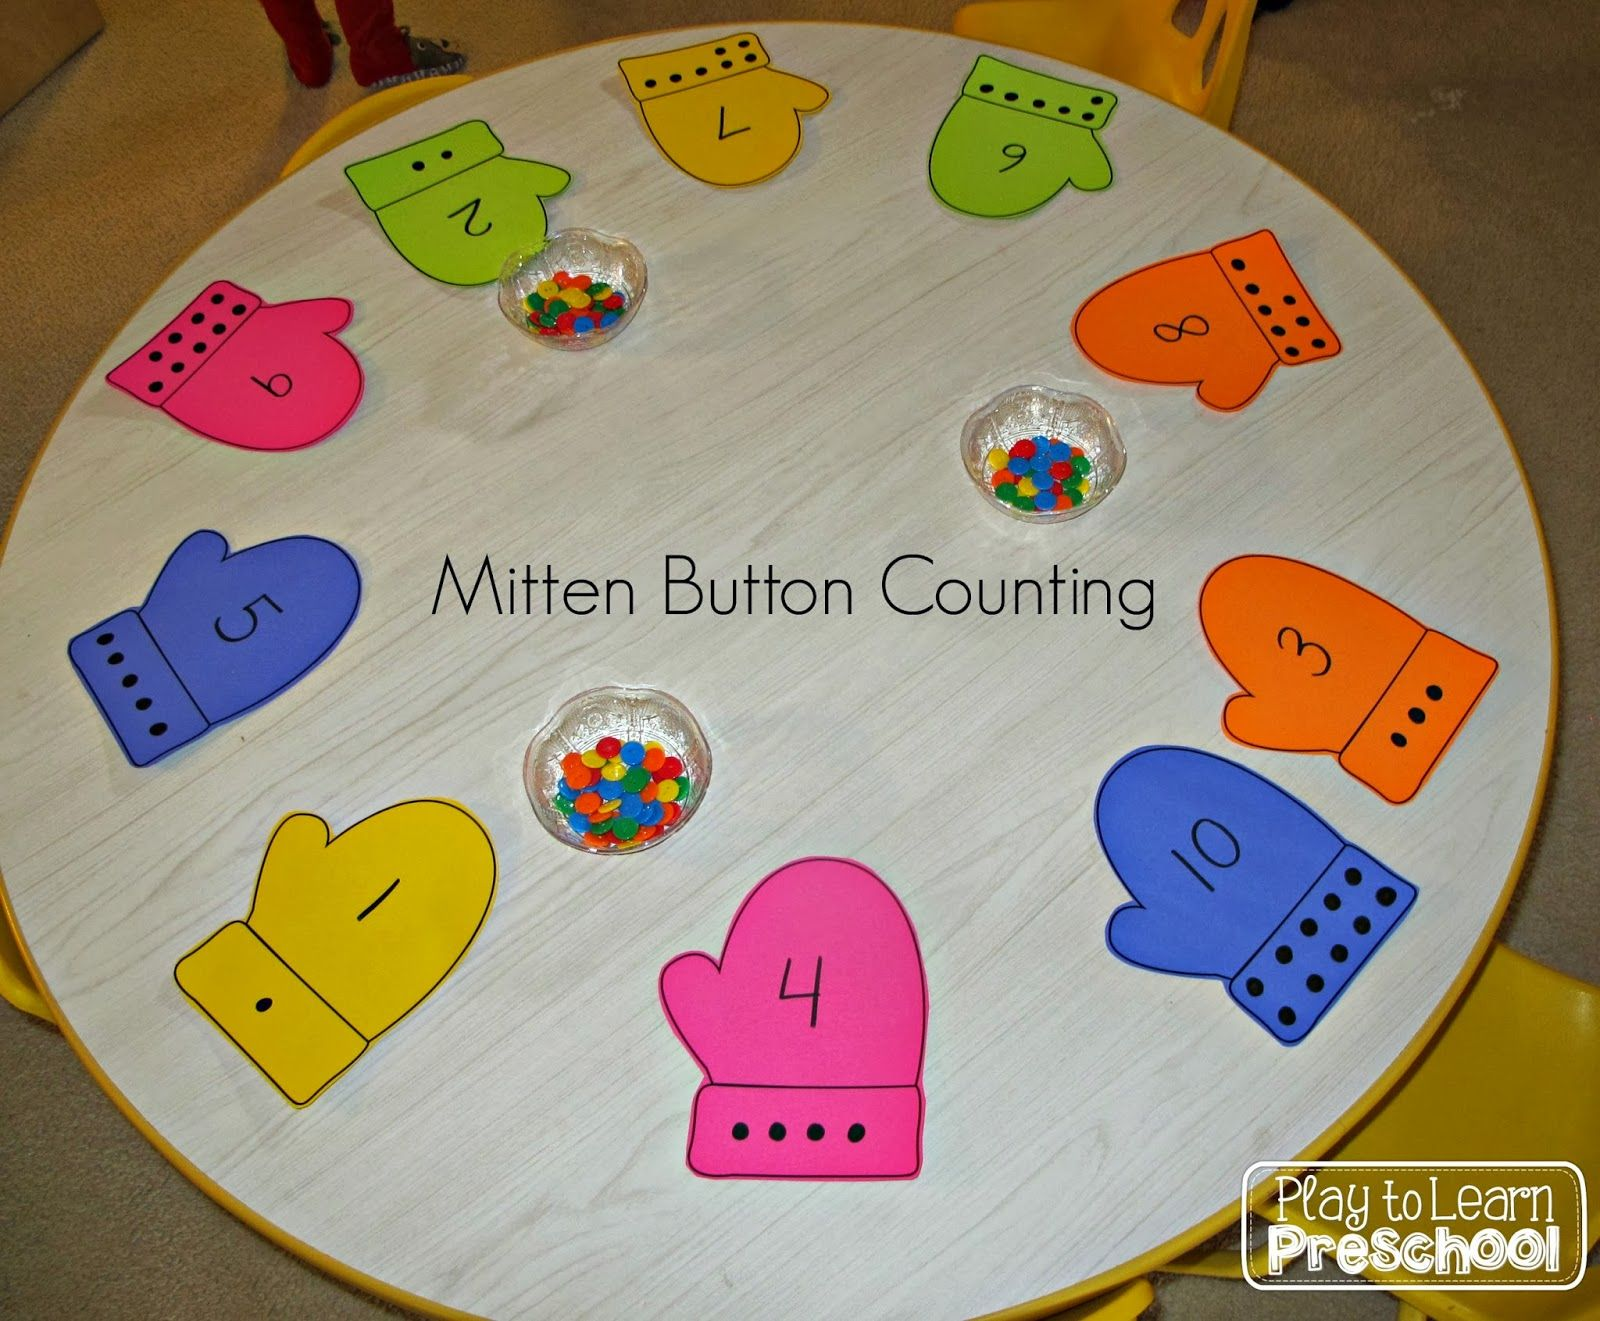 Mitten Button Counting Math Numbers Amp Counting